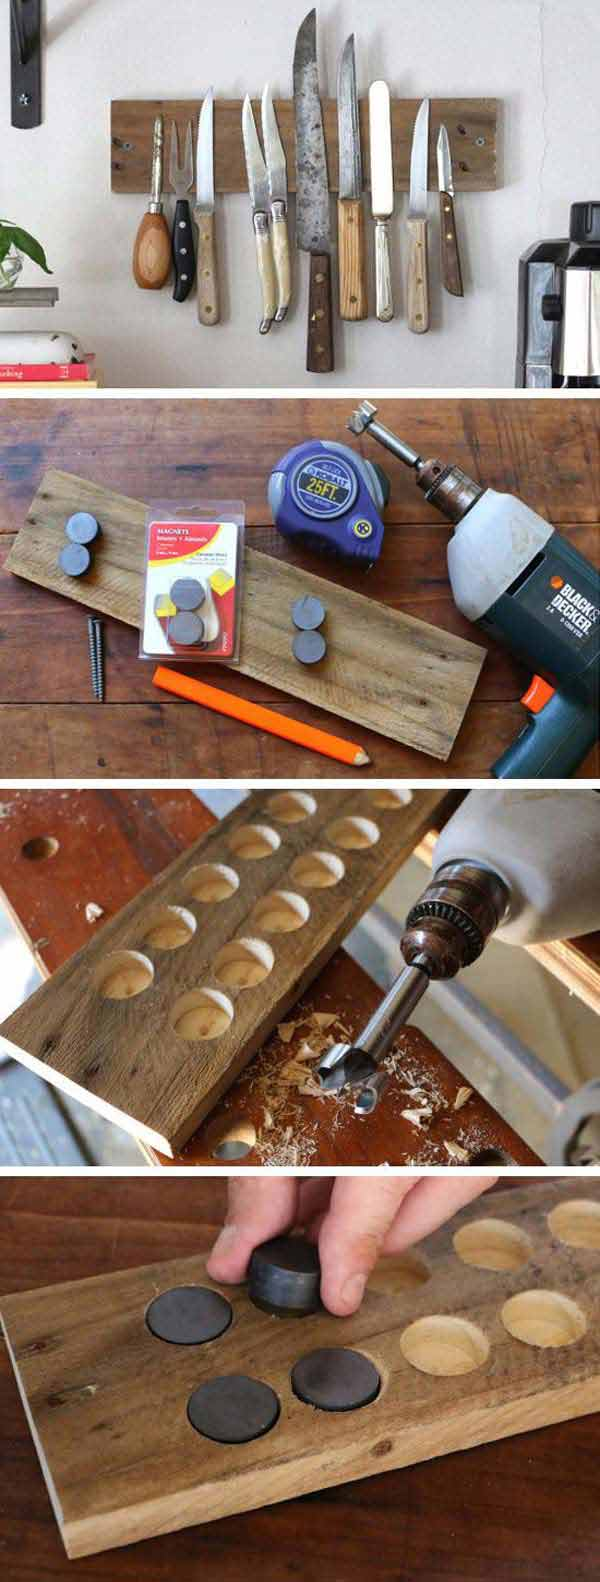 21 Super Smart and Ingenious DIY Projects To Realize at Home usefuldiyprojects (20)